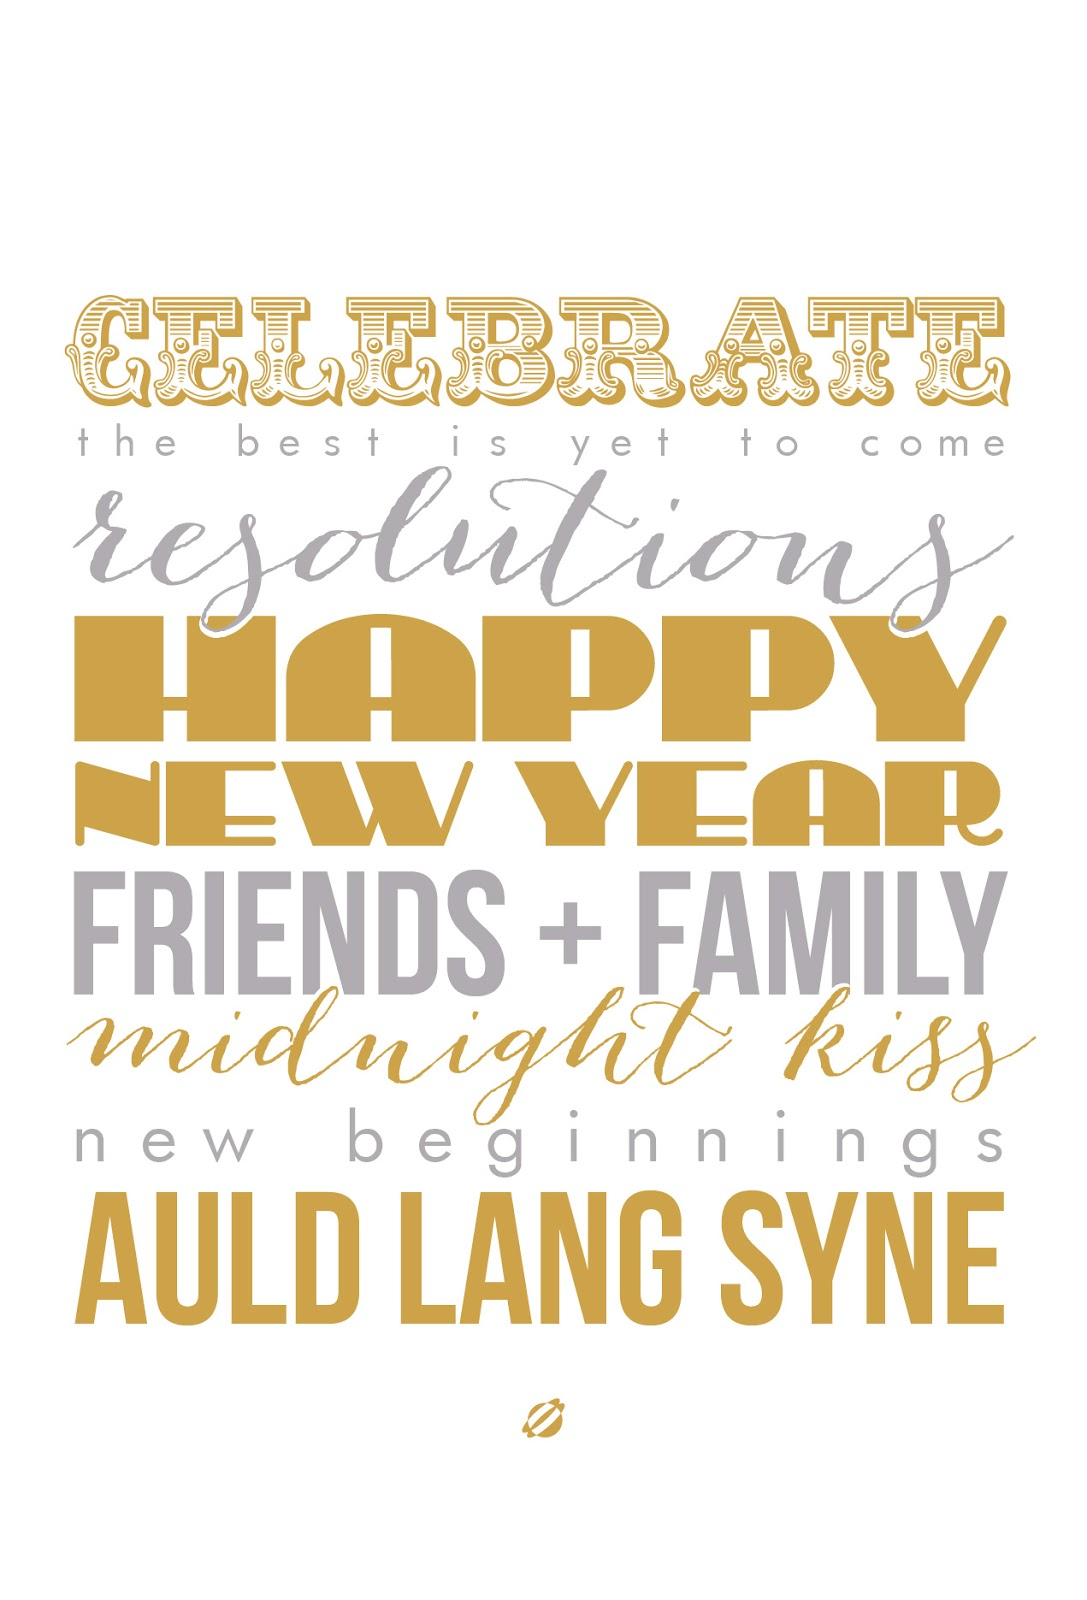 LostBumblebee 2013- HAPPY NEW YEAR - FREE PRINTABLE